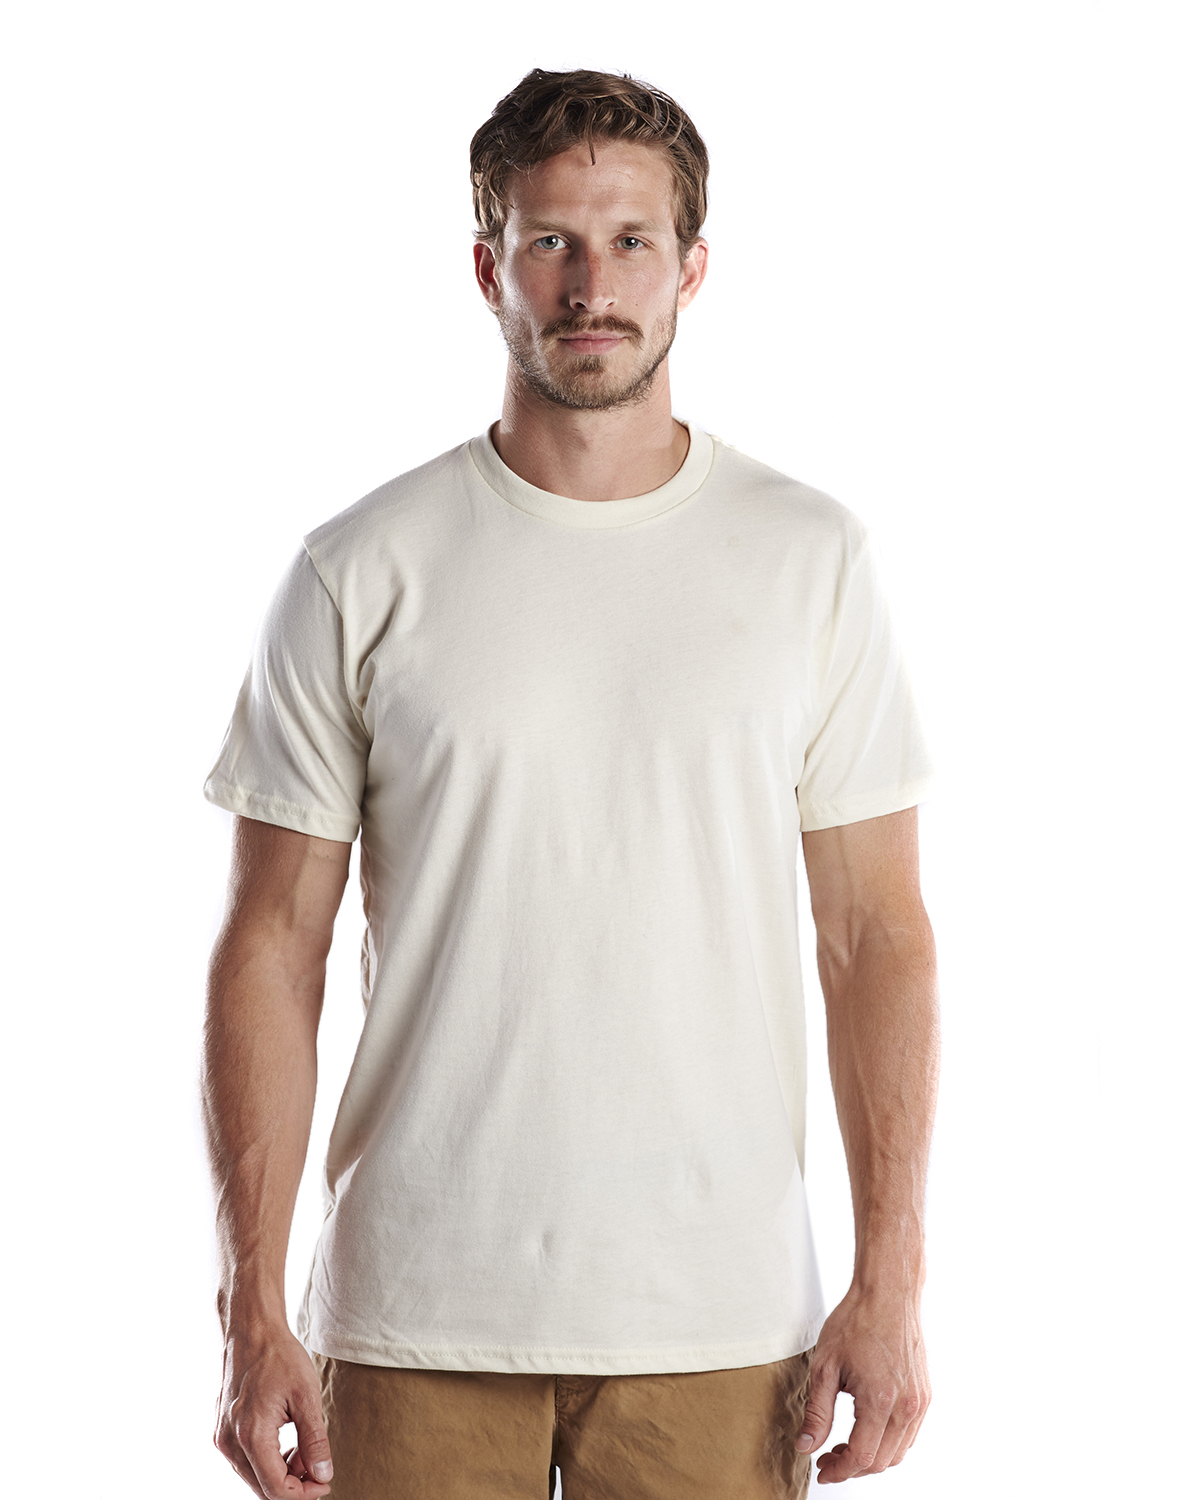 US Blanks US2000G - Men's 4.5 oz. Short-Sleeve Garment-...